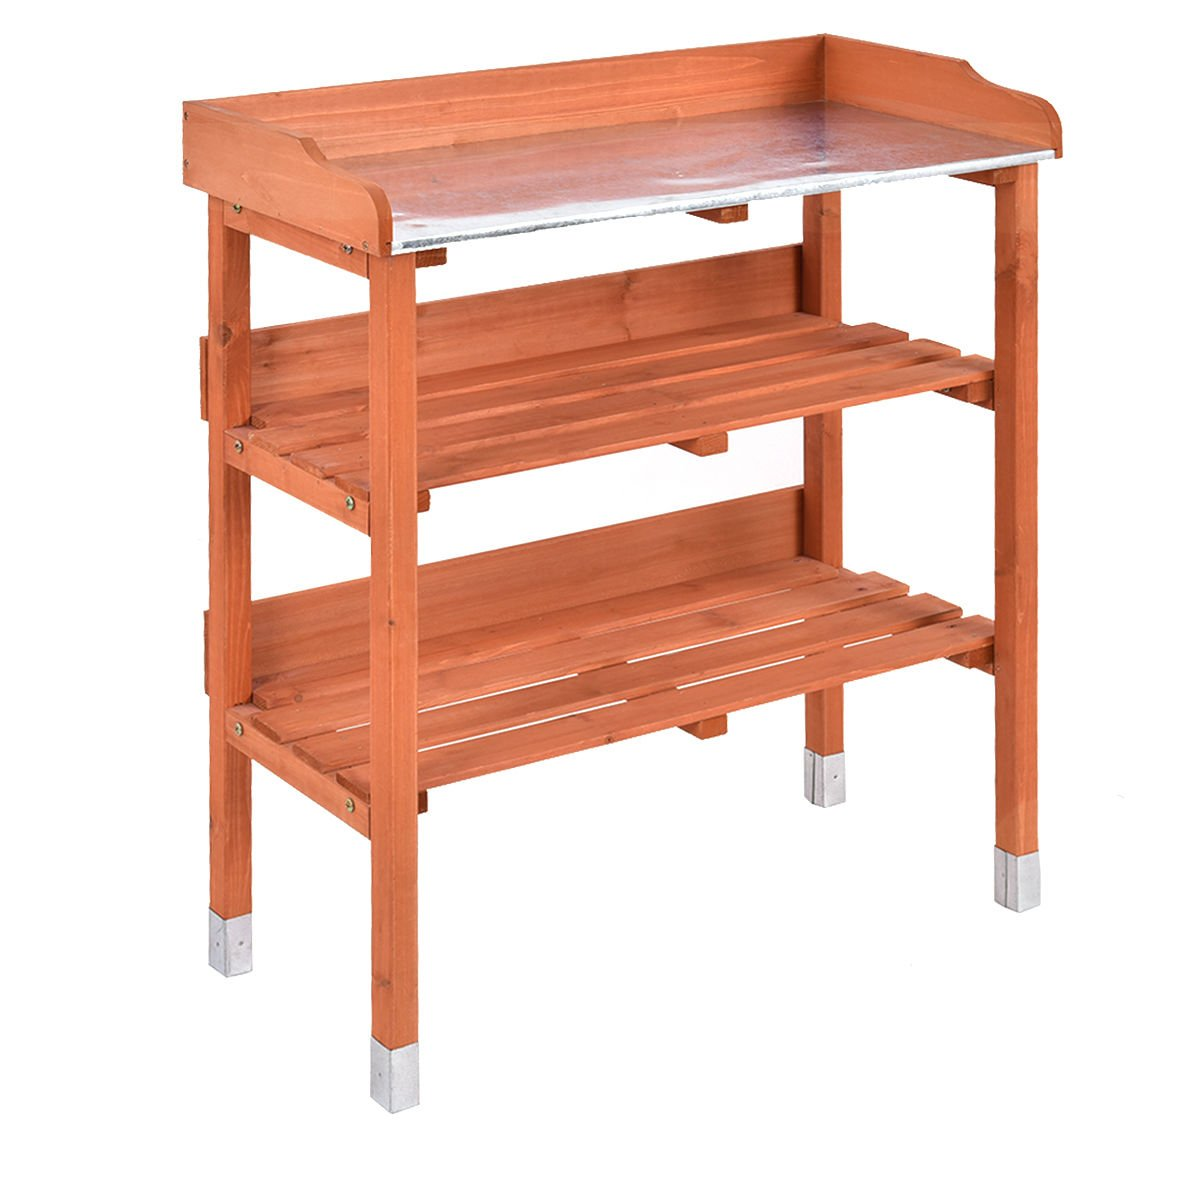 New Outdoor Garden Wooden Potting Bench Work Station Table Tool Storage Shelf W/Hook